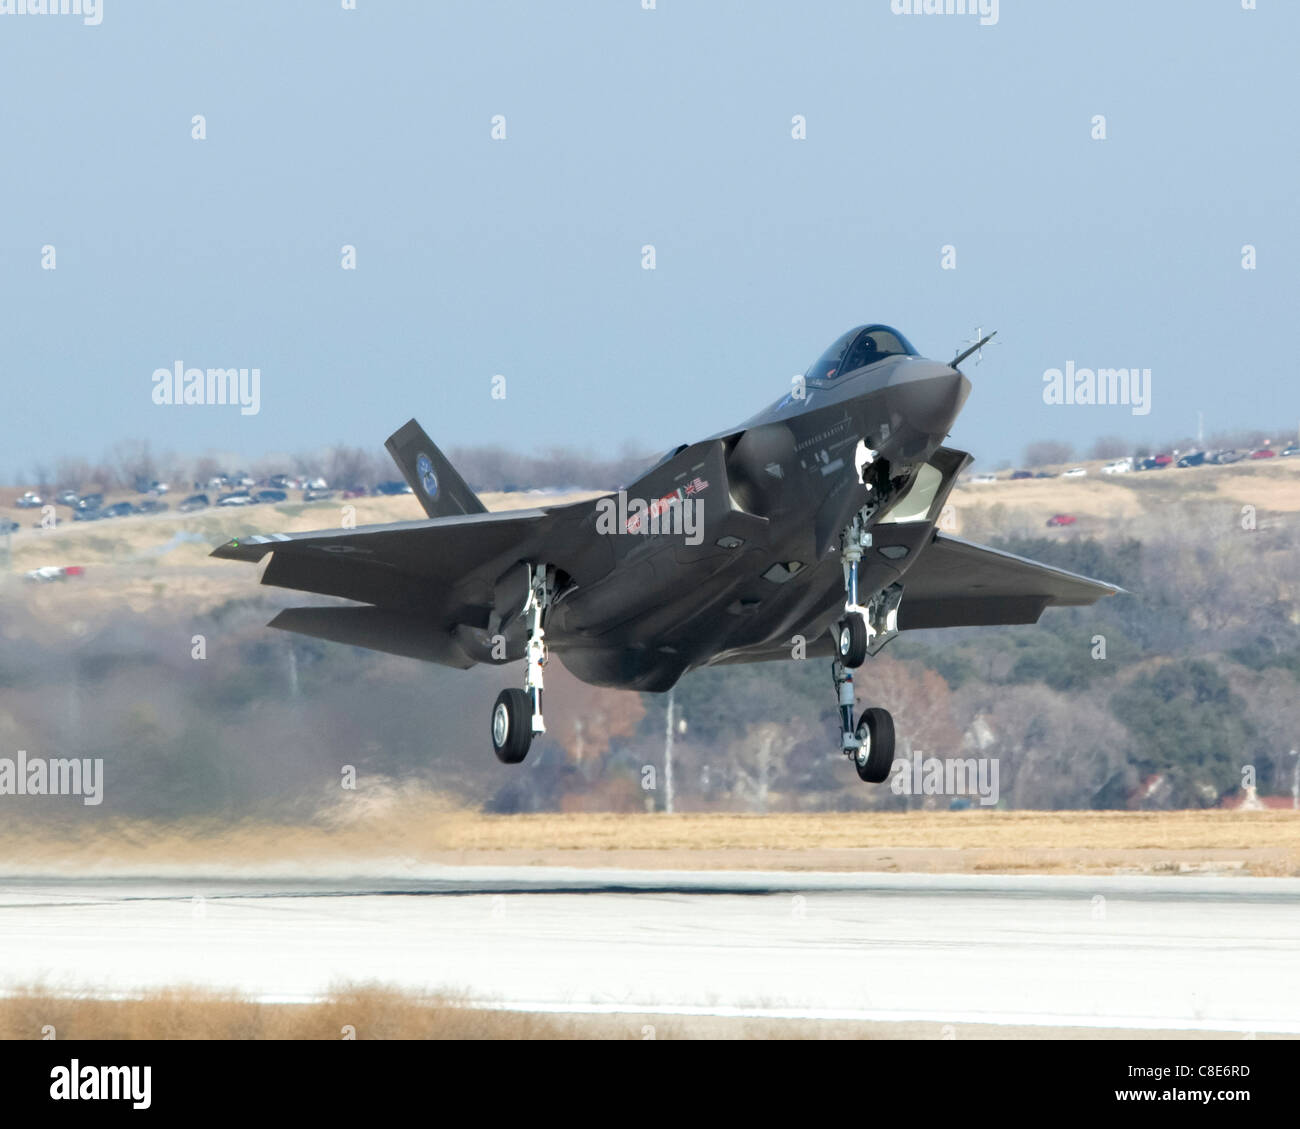 An F-35 Lightning II Joint Strike Fighter takes off at 12:44 p.m. CST at Lockheed Martin in Fort Worth, Texas - Stock Image